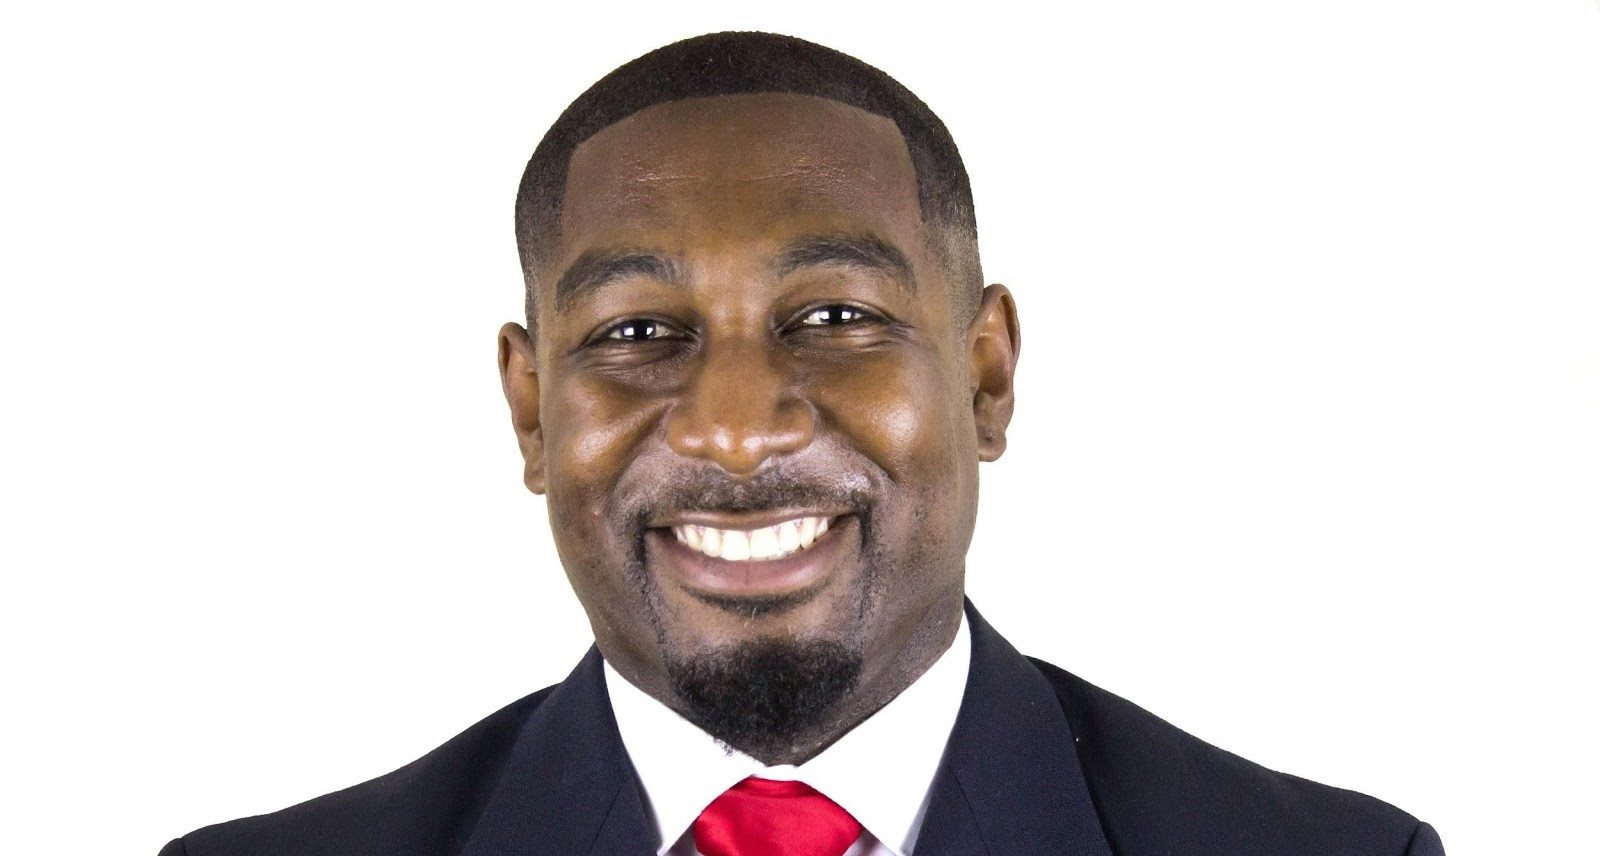 Meet Mark Barker, District 7 City Council Candidate, South Fulton